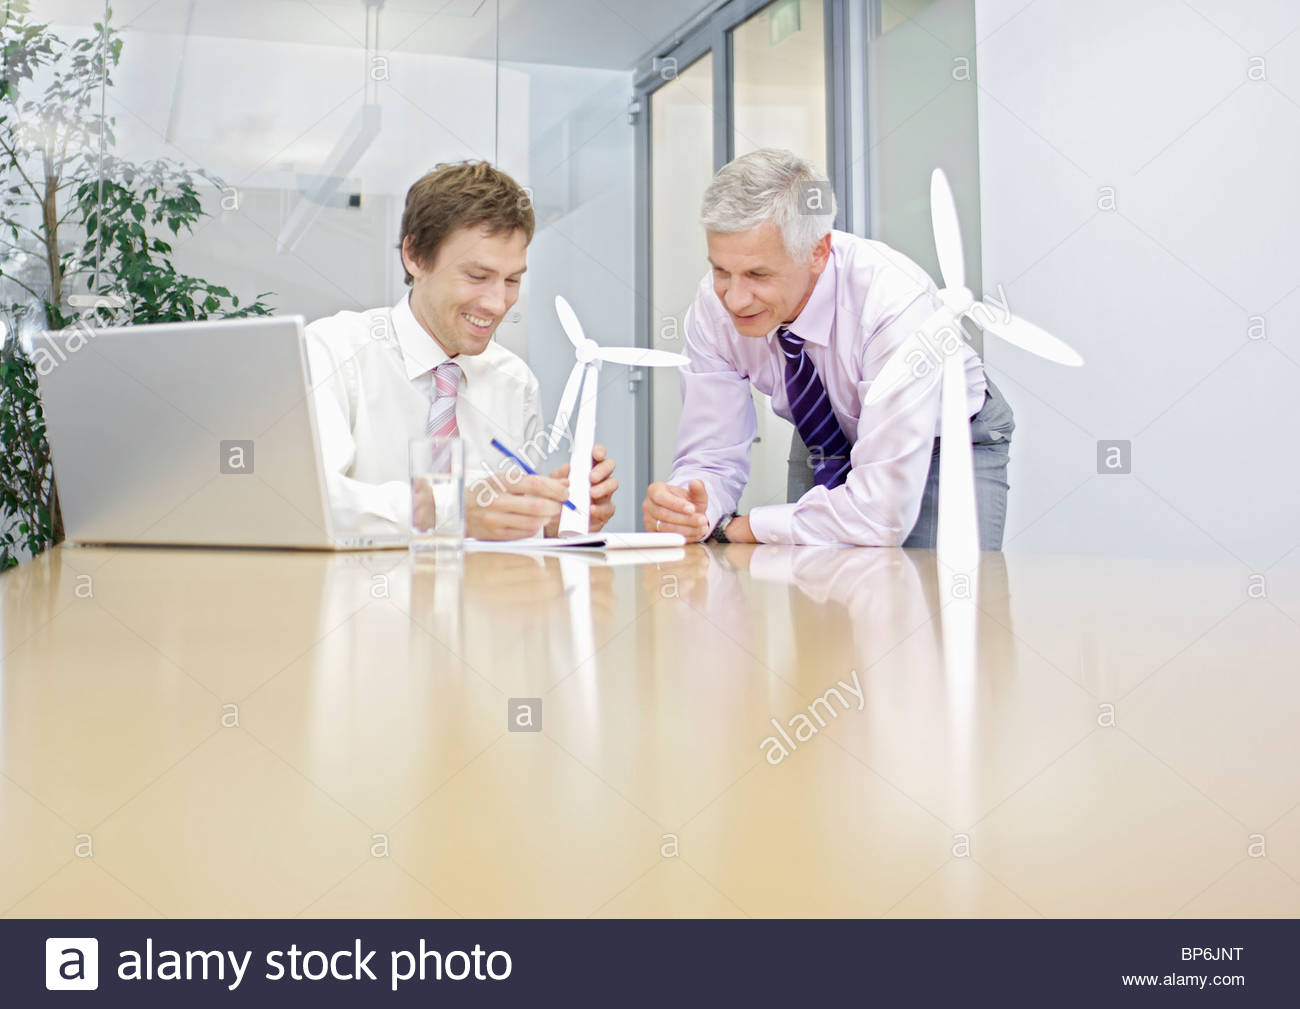 Two businessmen discussing wind turbine technology - Stock Image